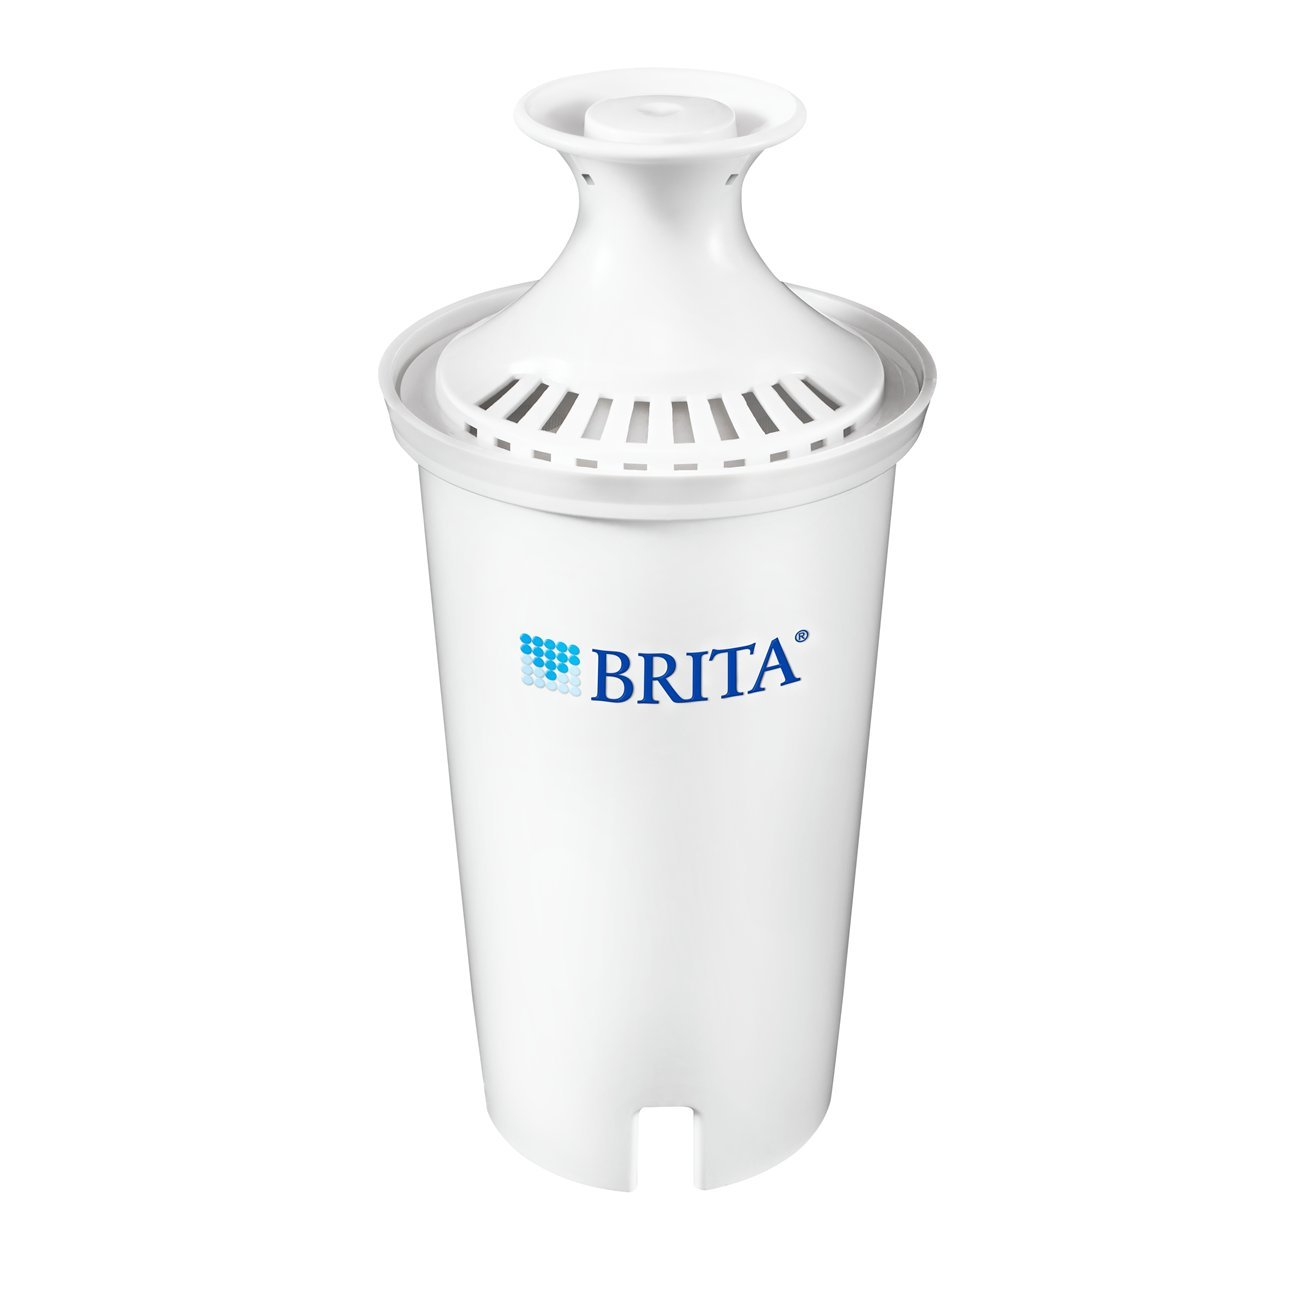 Brita Extra Large 18 Cup Filtered Water Dispenser with 1 Standard Filter, BPA Free – UltraMax, Gray by Brita (Image #4)